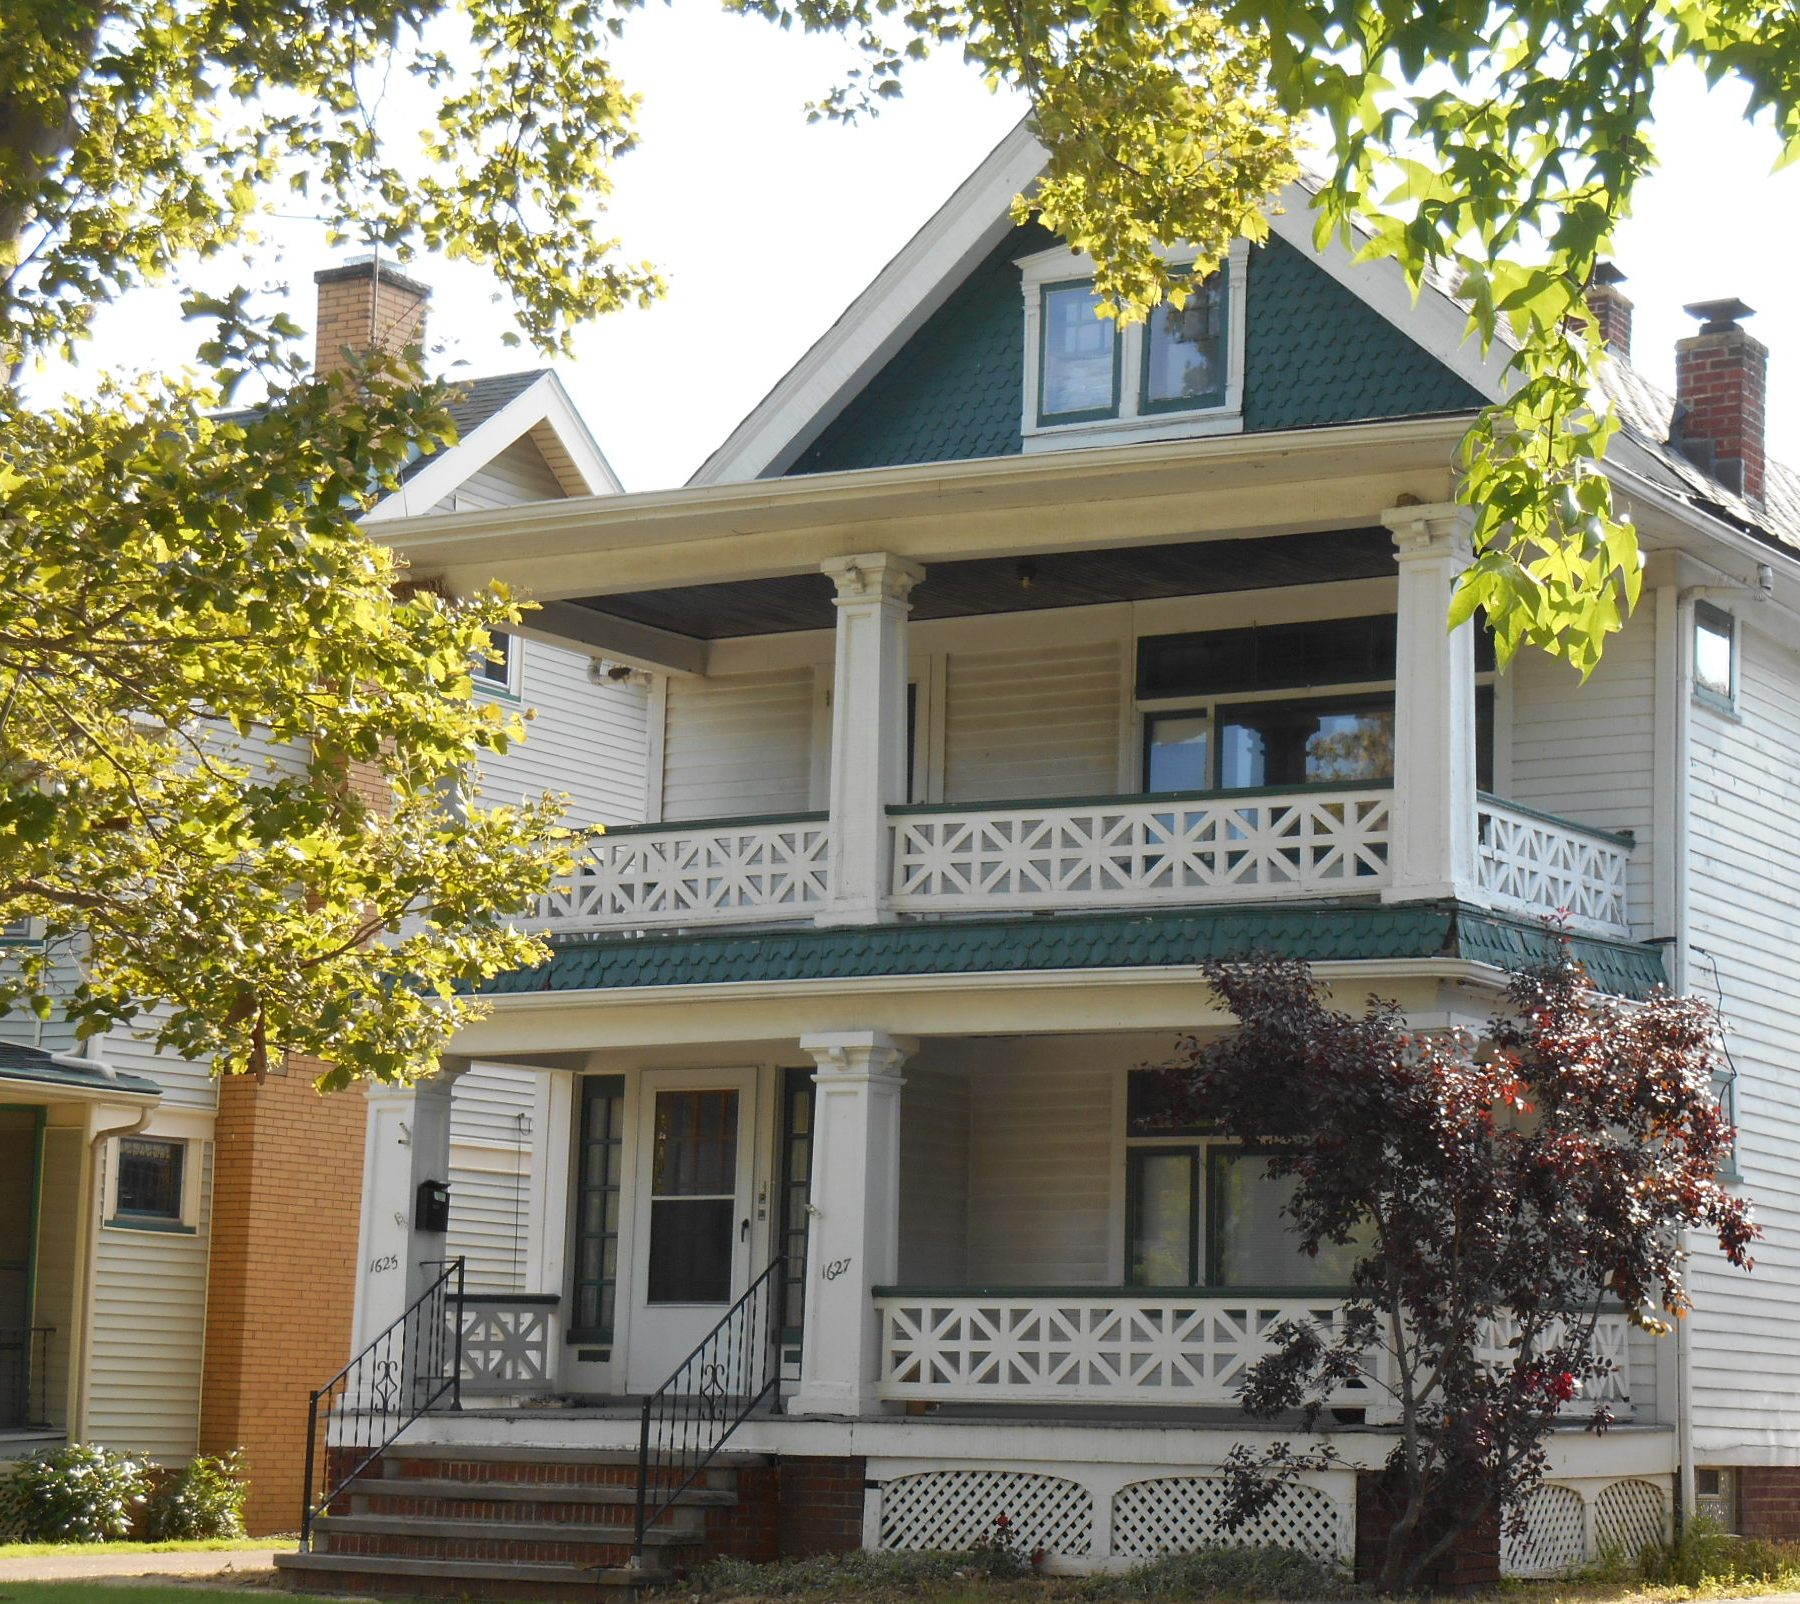 Find A Duplex For Rent: Multi-Family Rentals